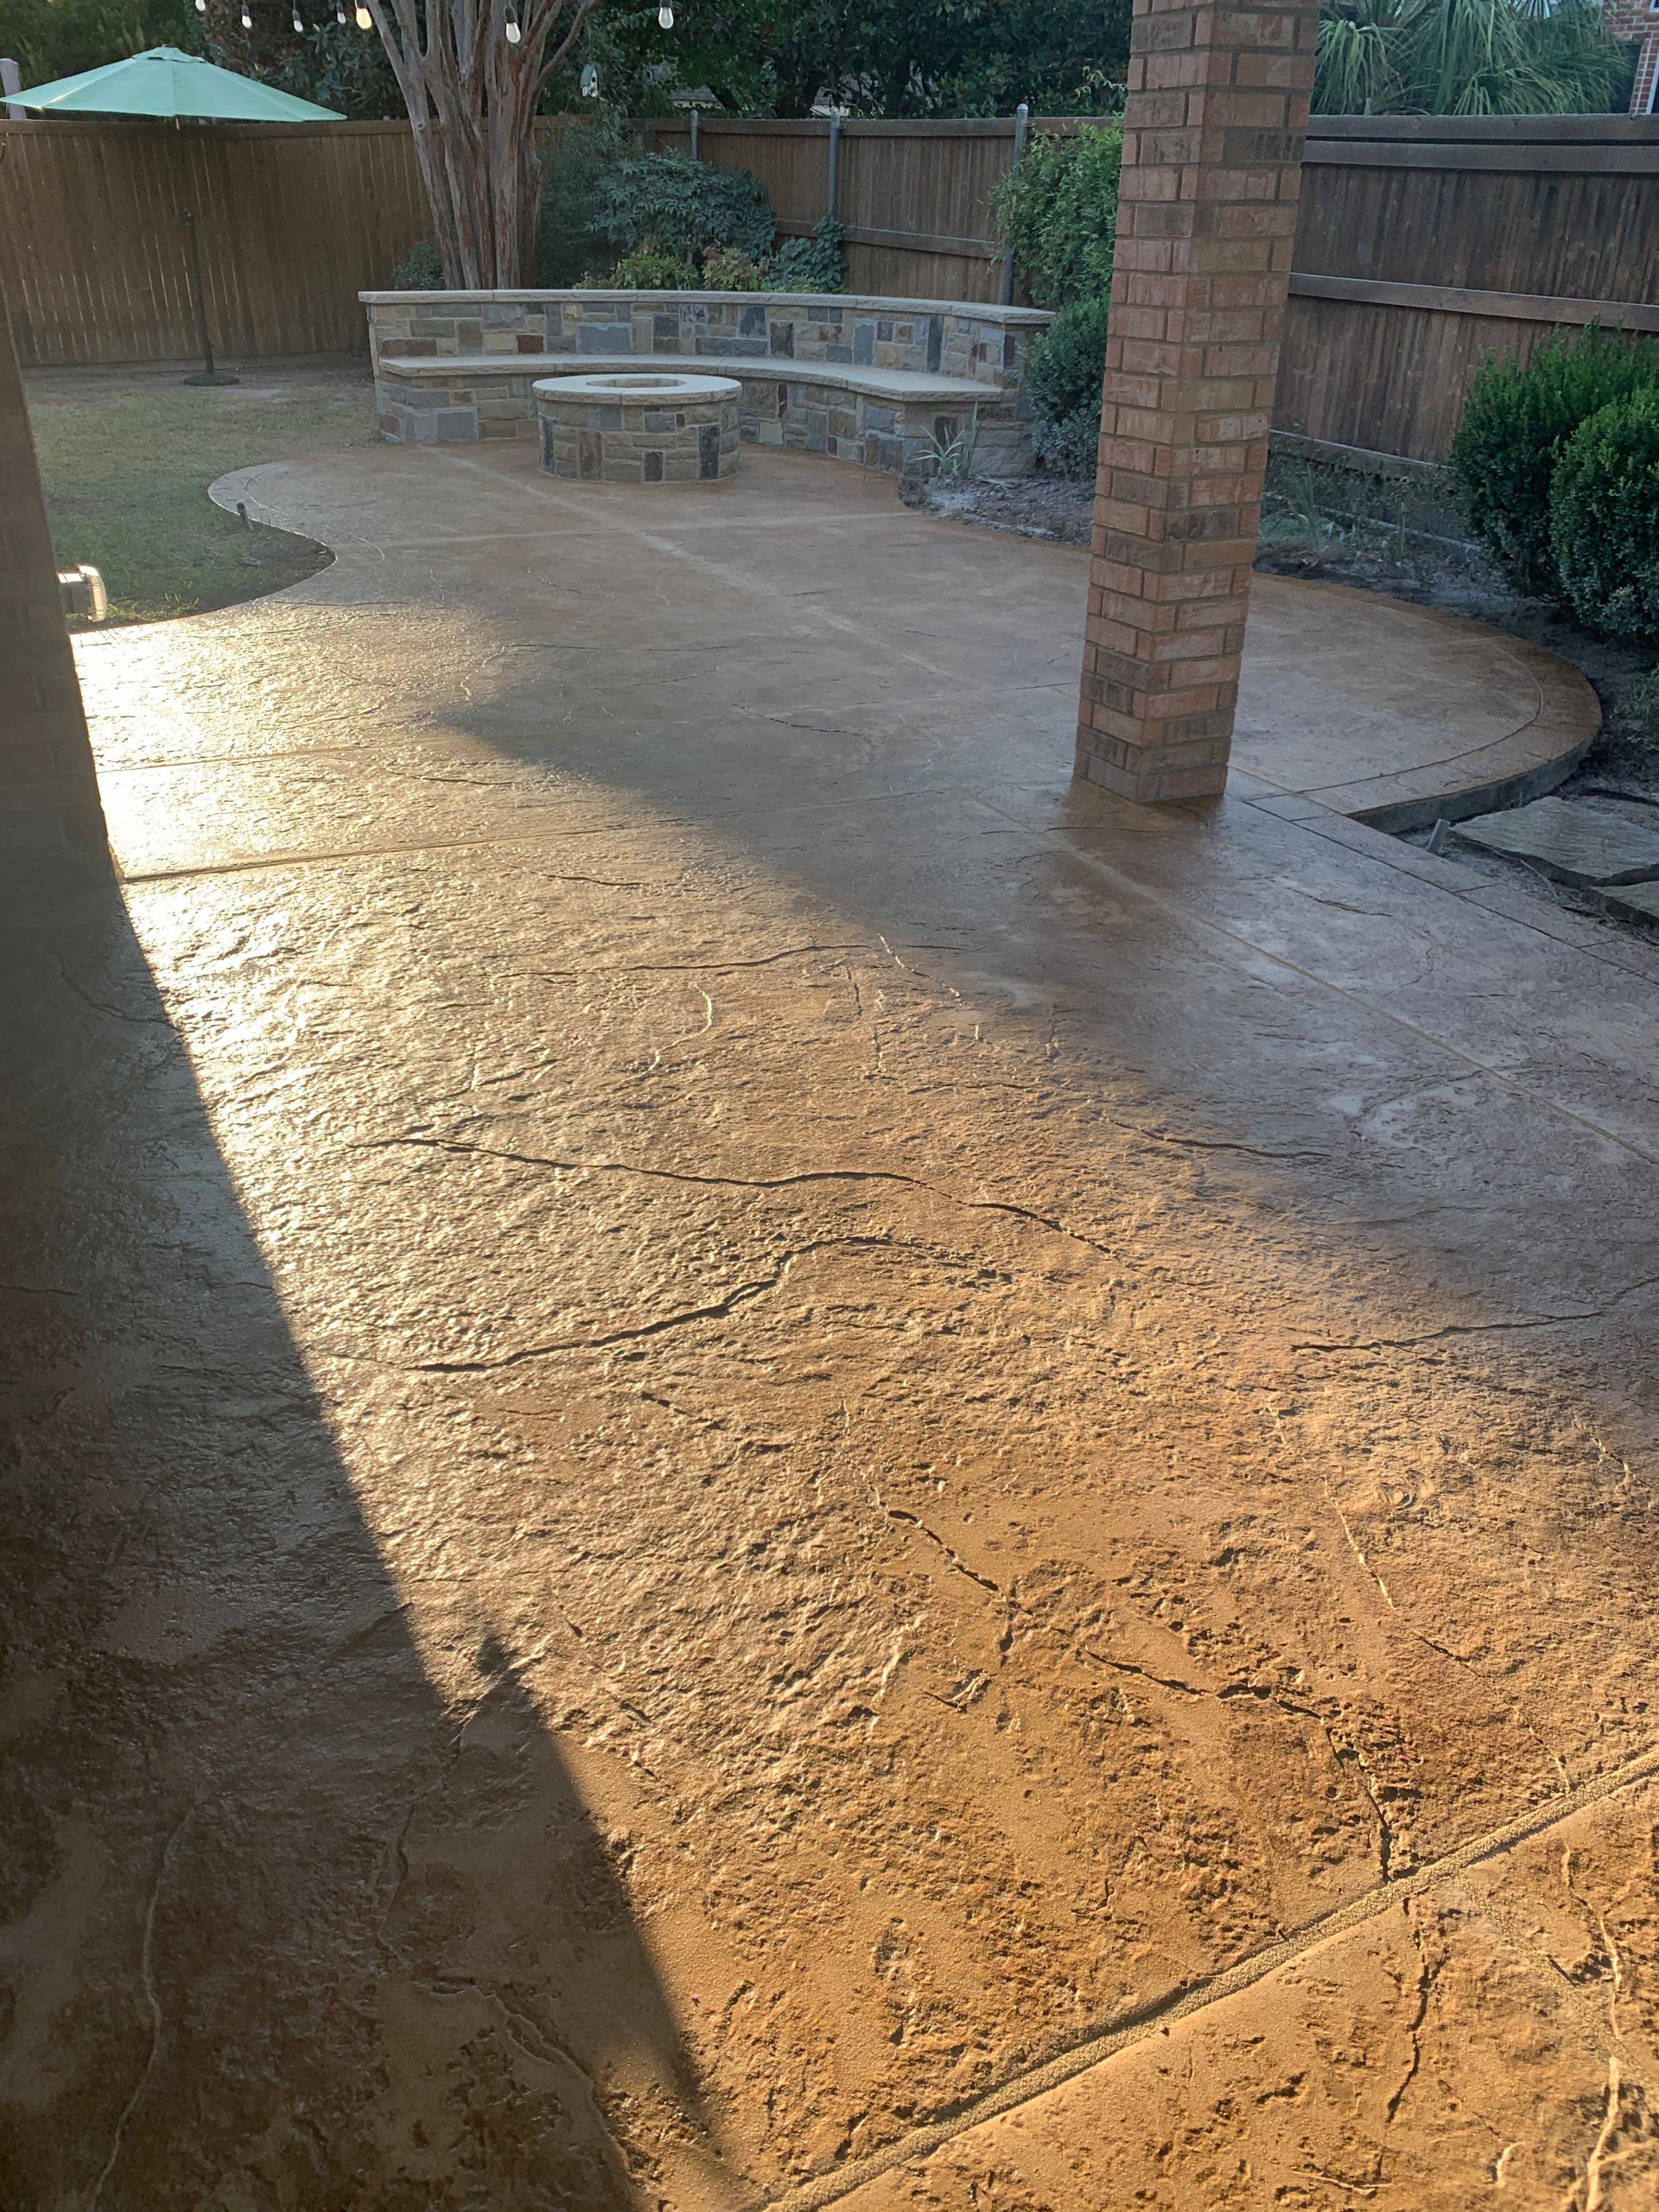 Stone benches, fire pit and stamped concrete